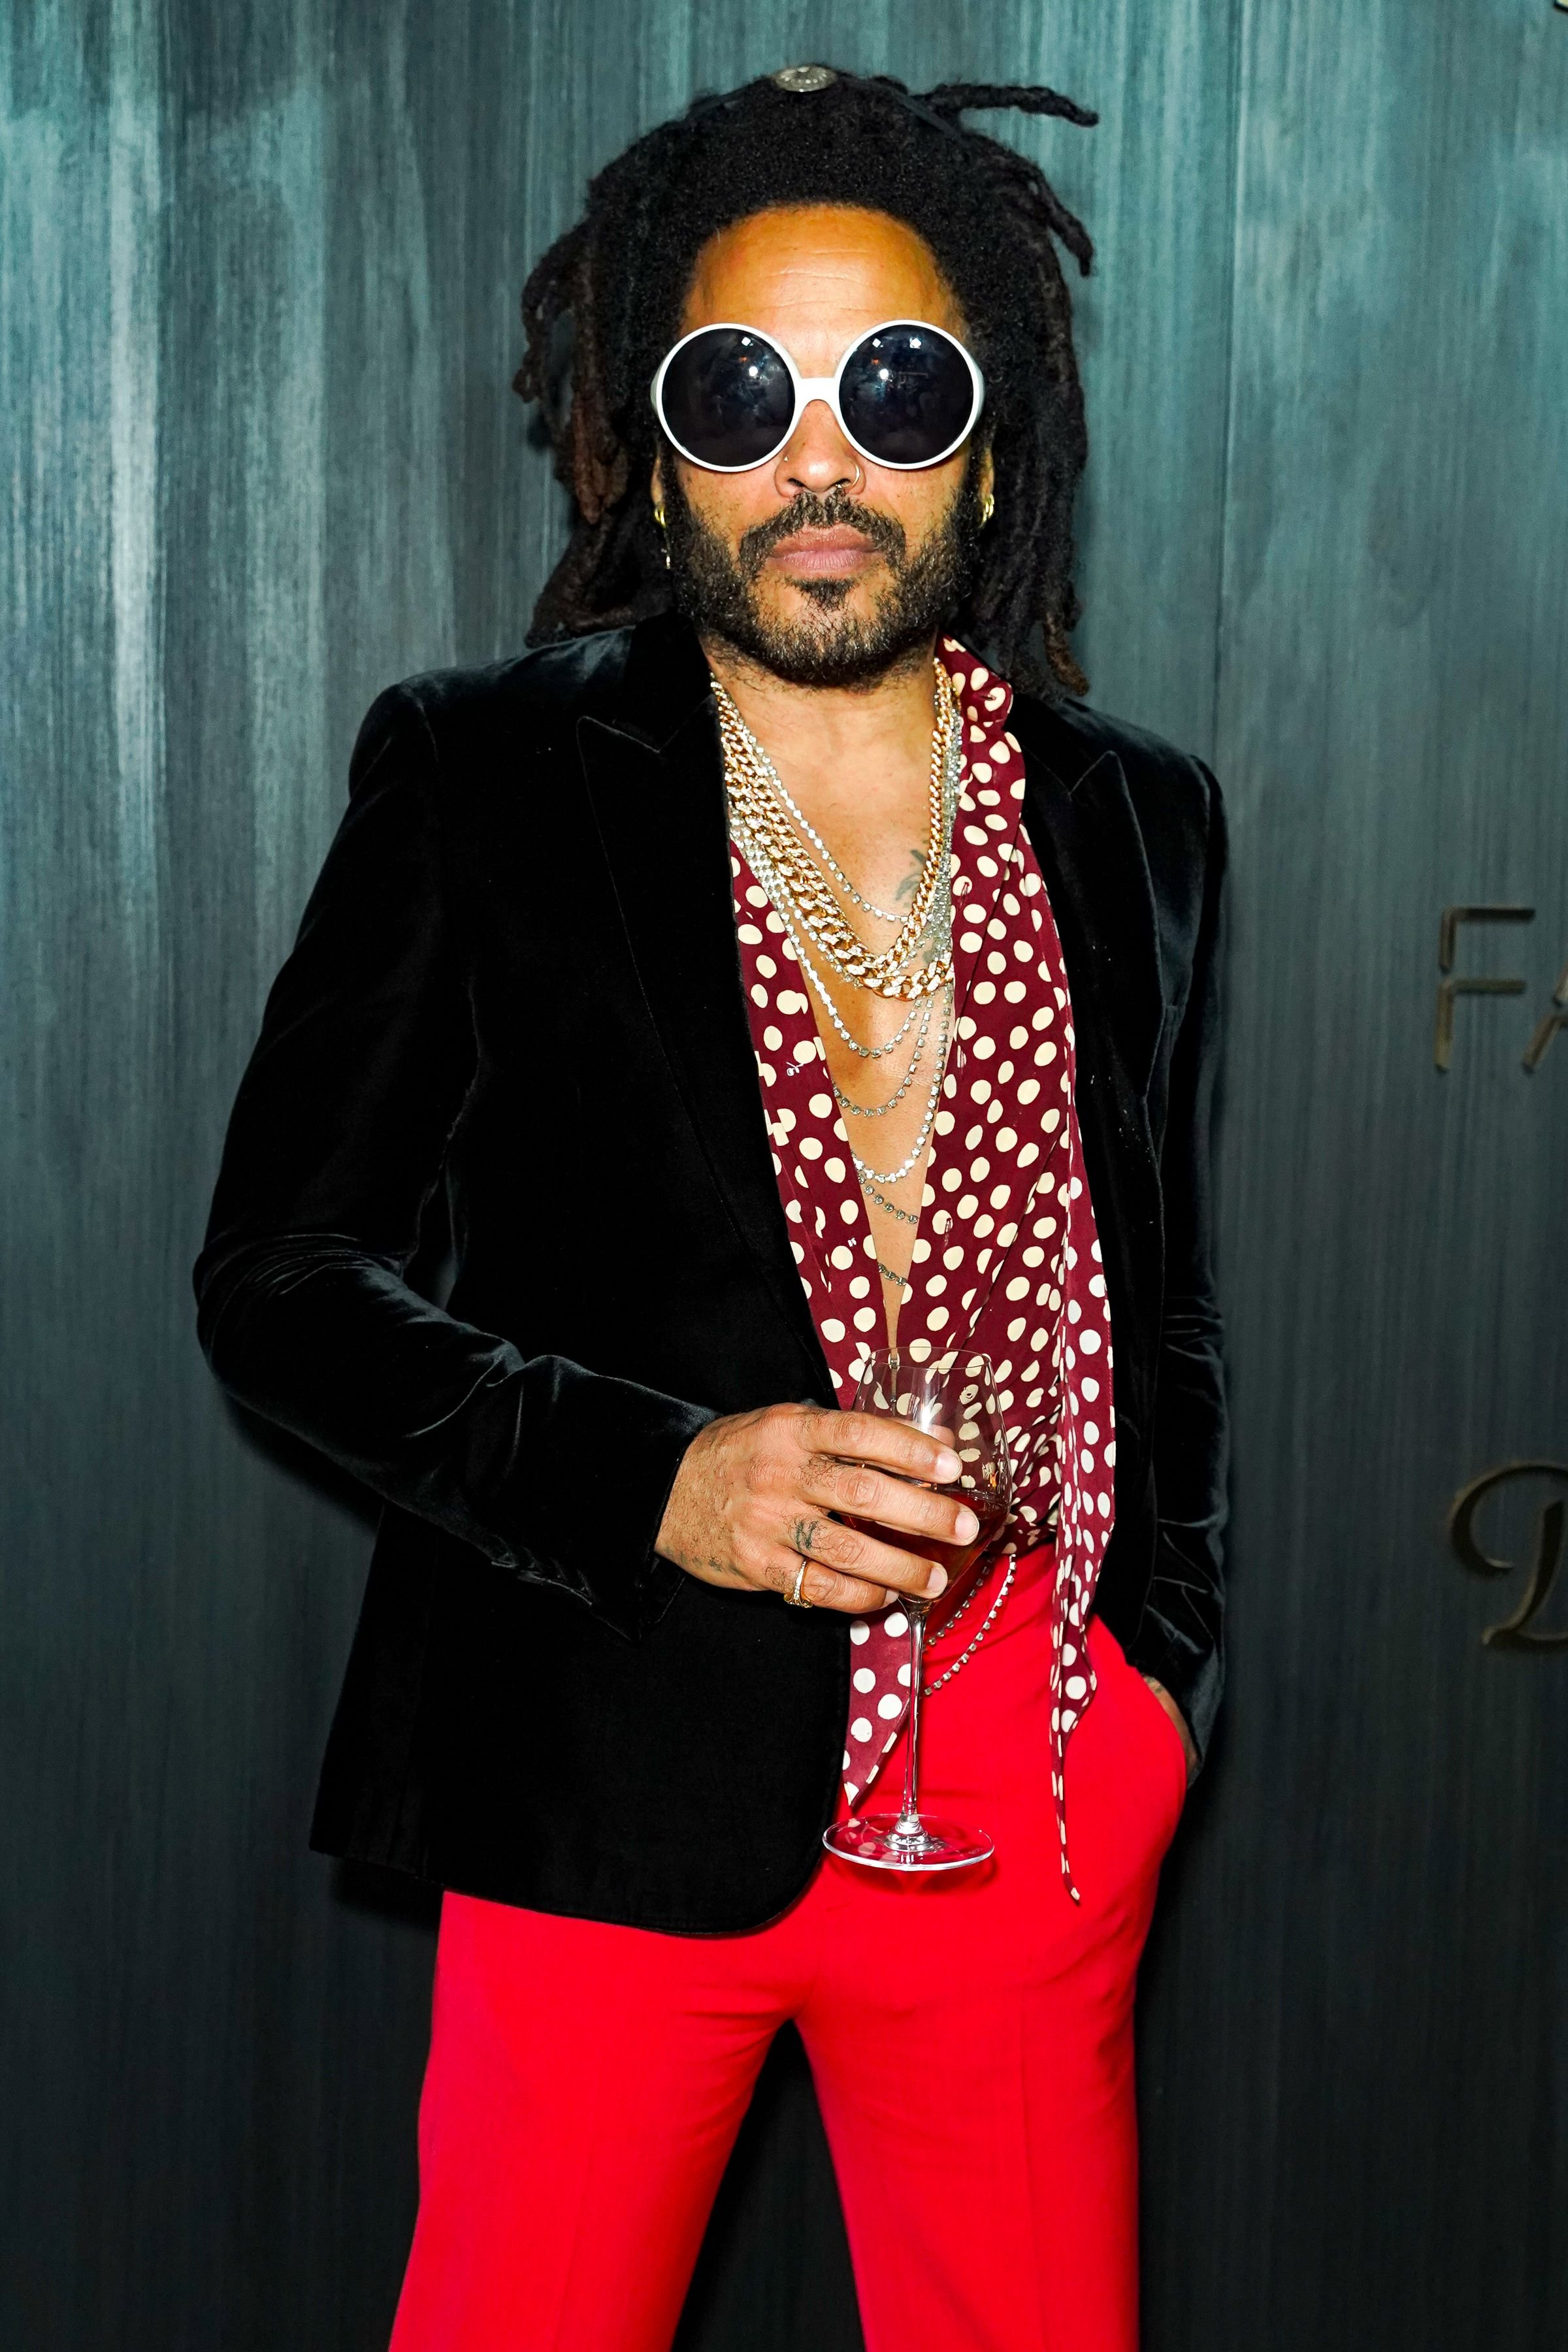 Lenny Kravitz during Dom Perignon Last Supper Party on December 04, 2019 in Miami, Florida. | Source: Getty Images